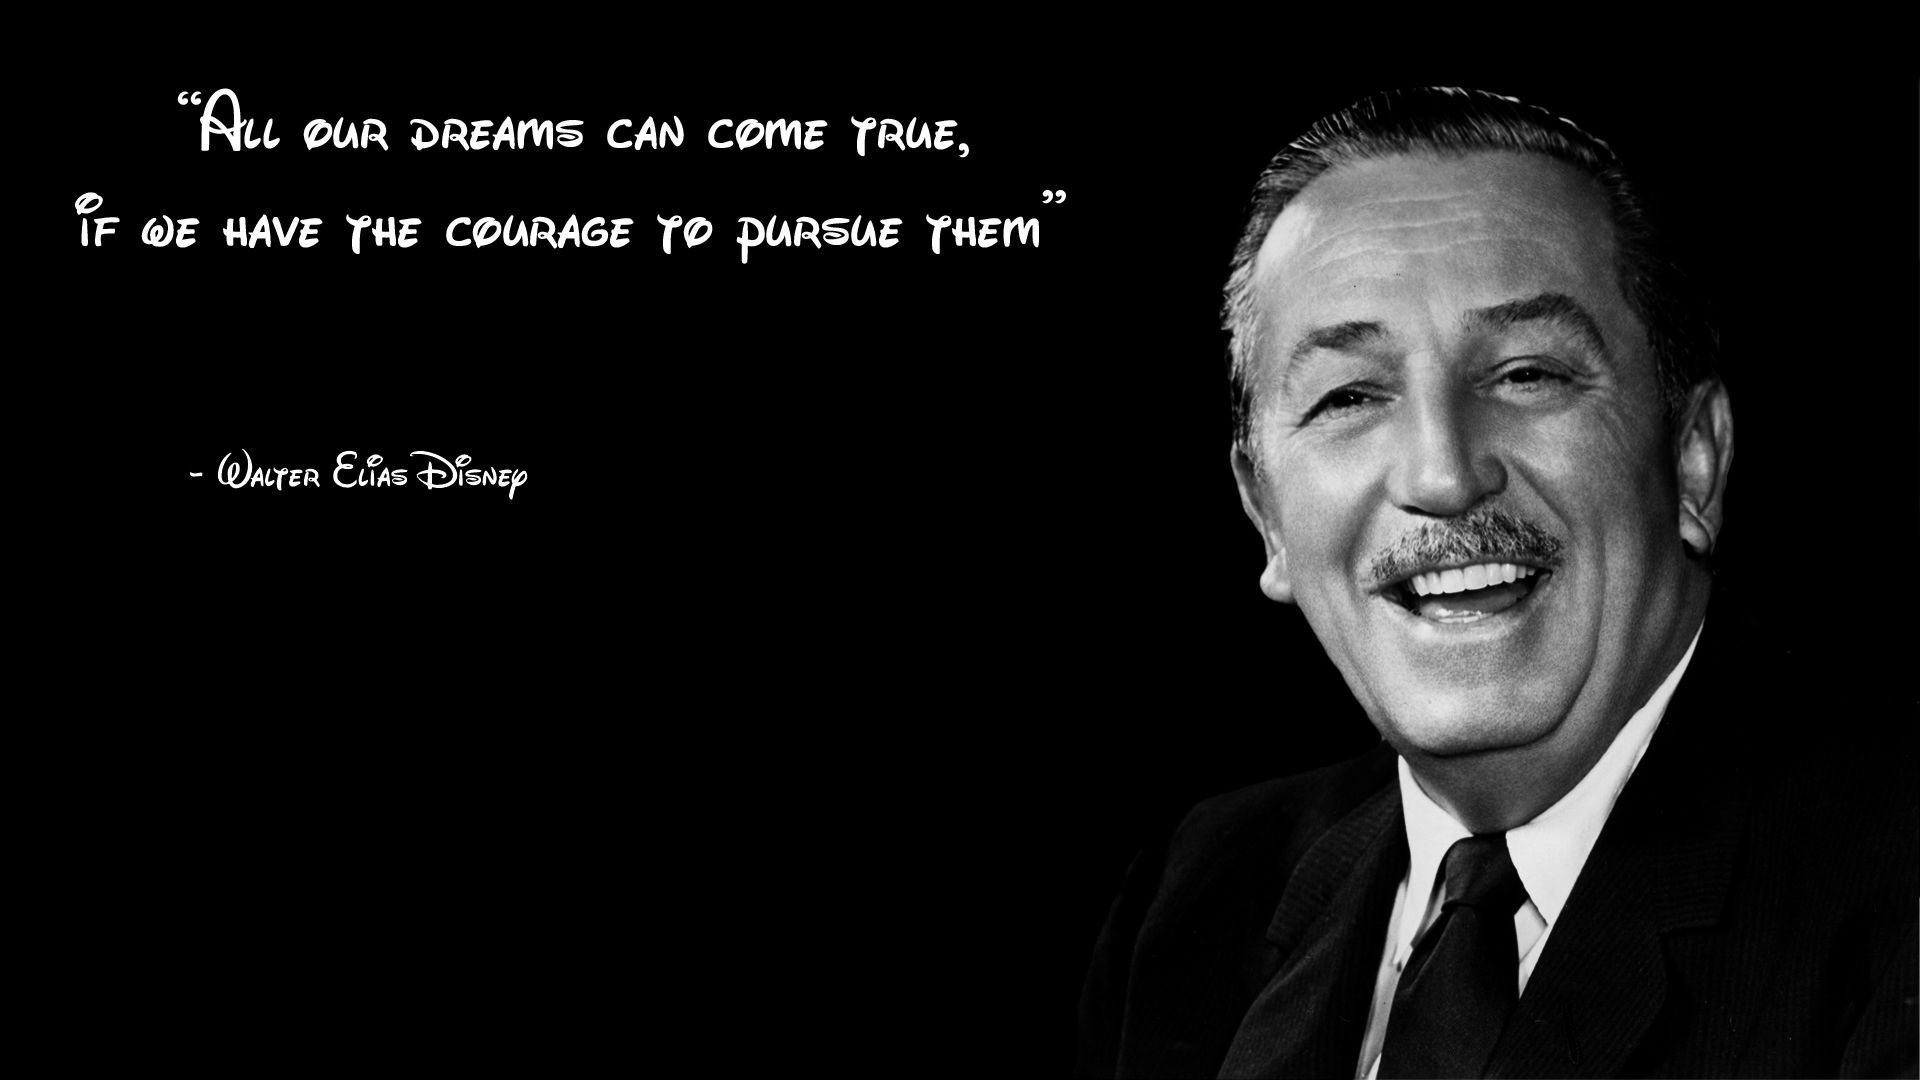 All Our Dreams Can Come True If We Have The Courage To Pursue Them Walt Disney Quote Inspira Walt Disney Quotes Courage Quotes Quotes By Famous People